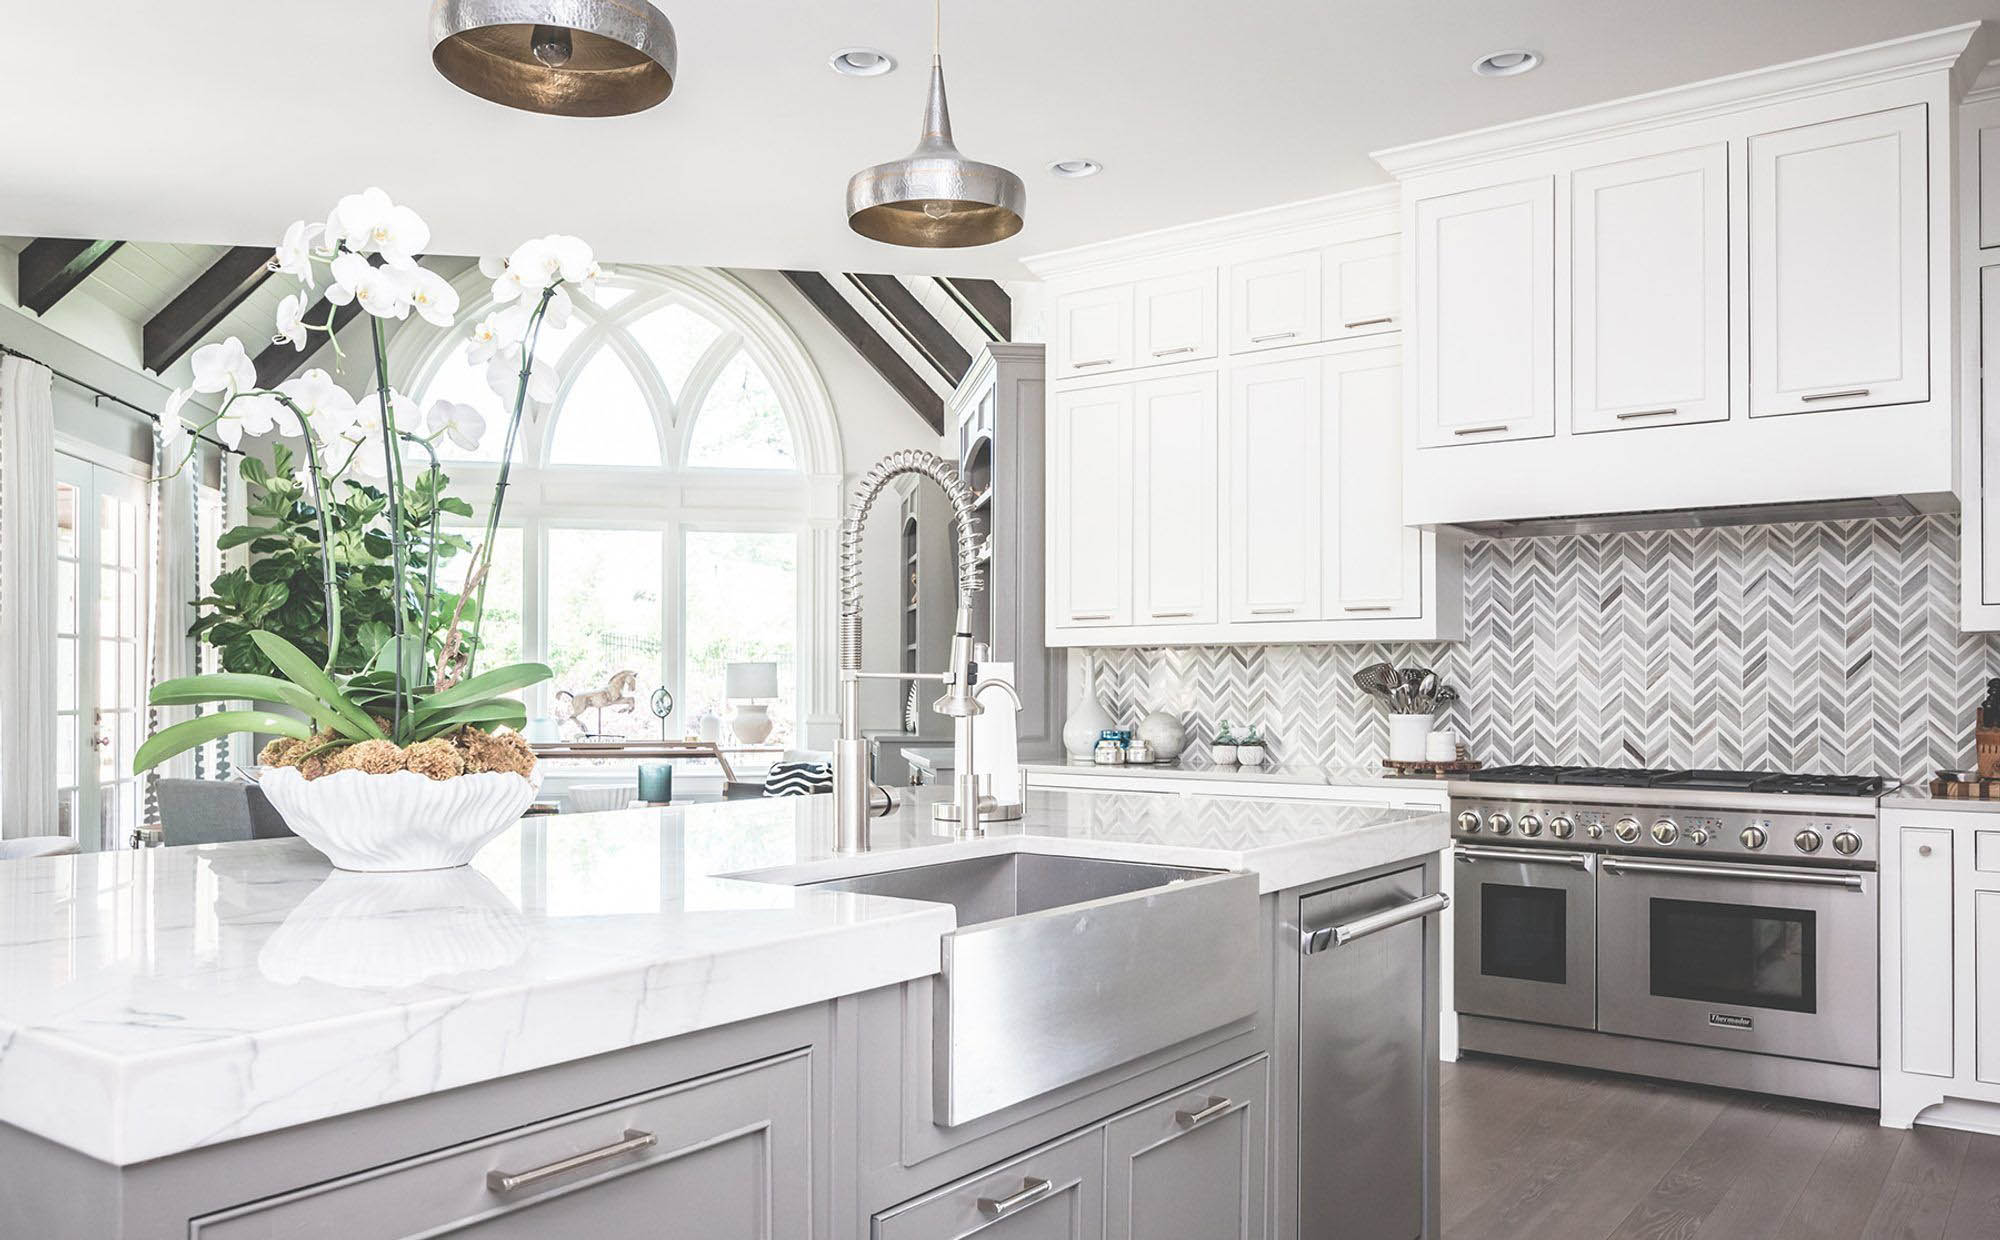 Single basin stainless steel farmhouse kitchen sink with stainless faucet. Gray cabinetry with stainless hardware and marble quartz countertops.